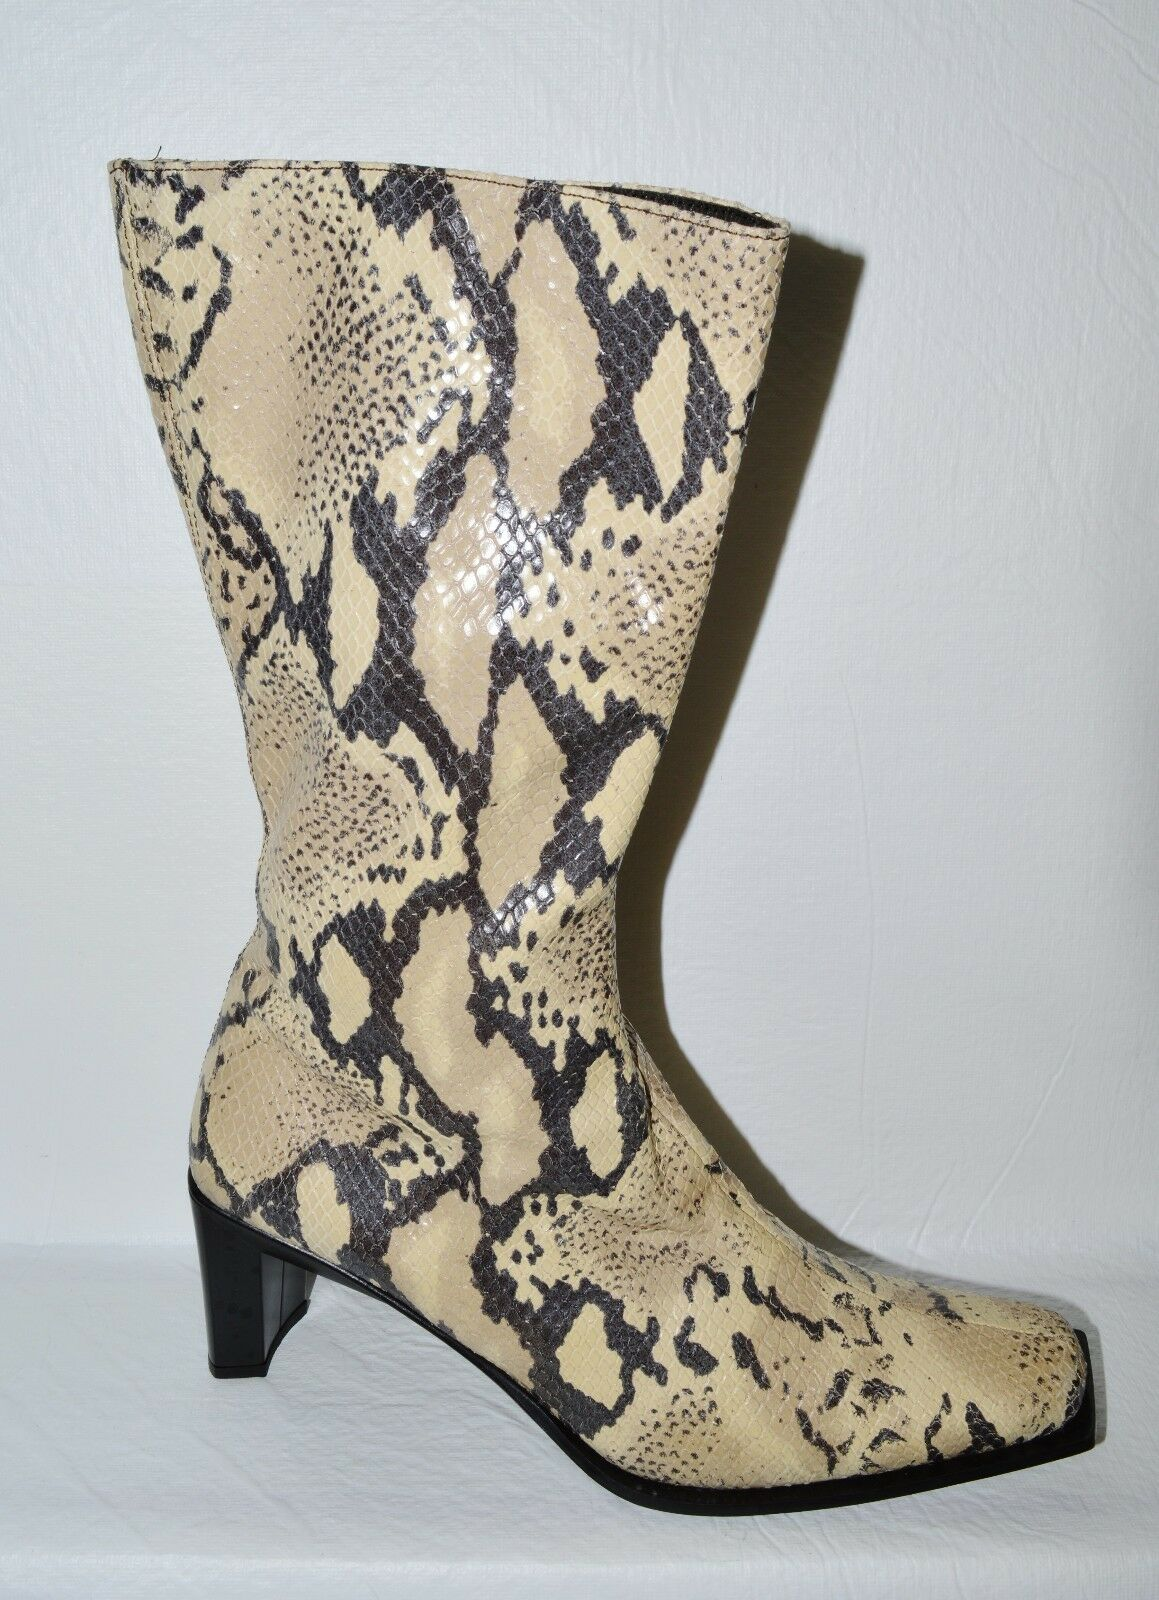 CORDANI SZ 9.5 M 40 BEIGE BLACK SNAKE PRINT LEATHER MID CALF BOOTS BOOTIES ITALY